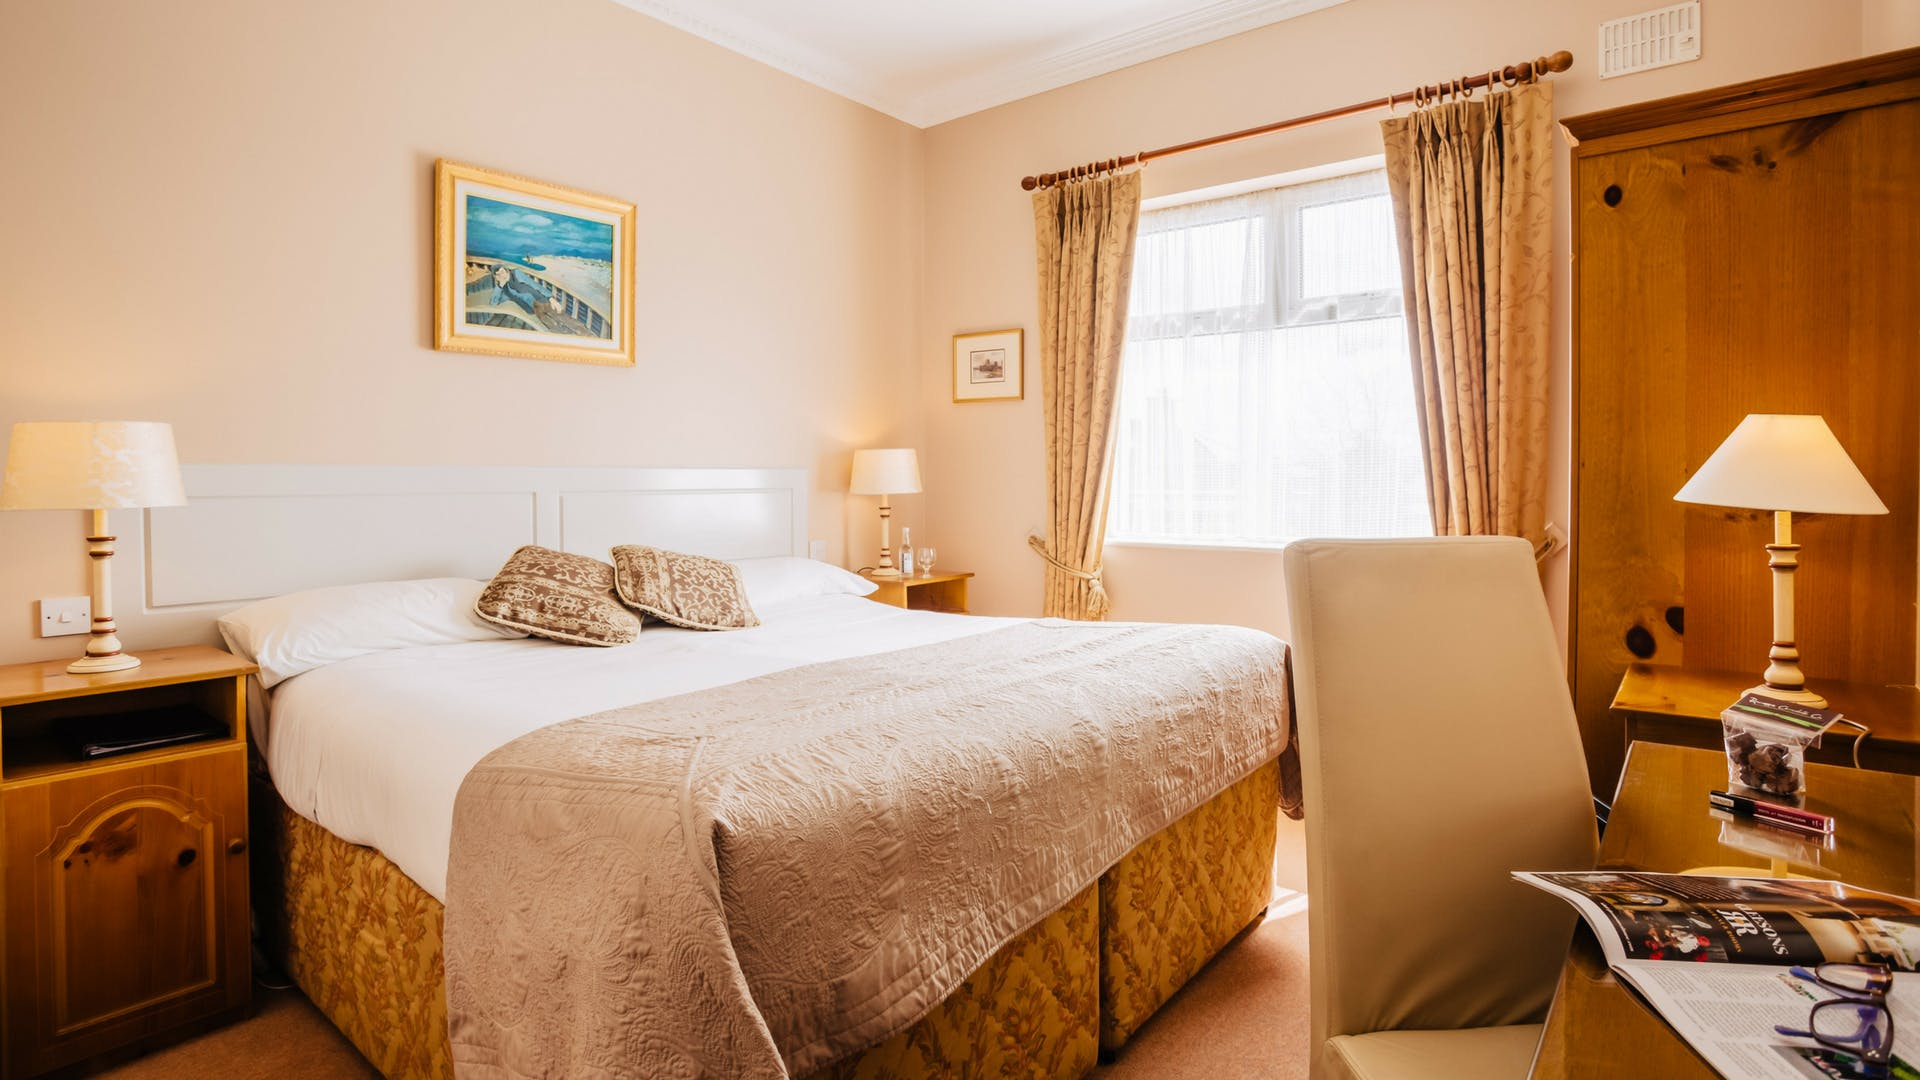 Stay in double room at Gleesons Restaurant & Rooms, Roscommon